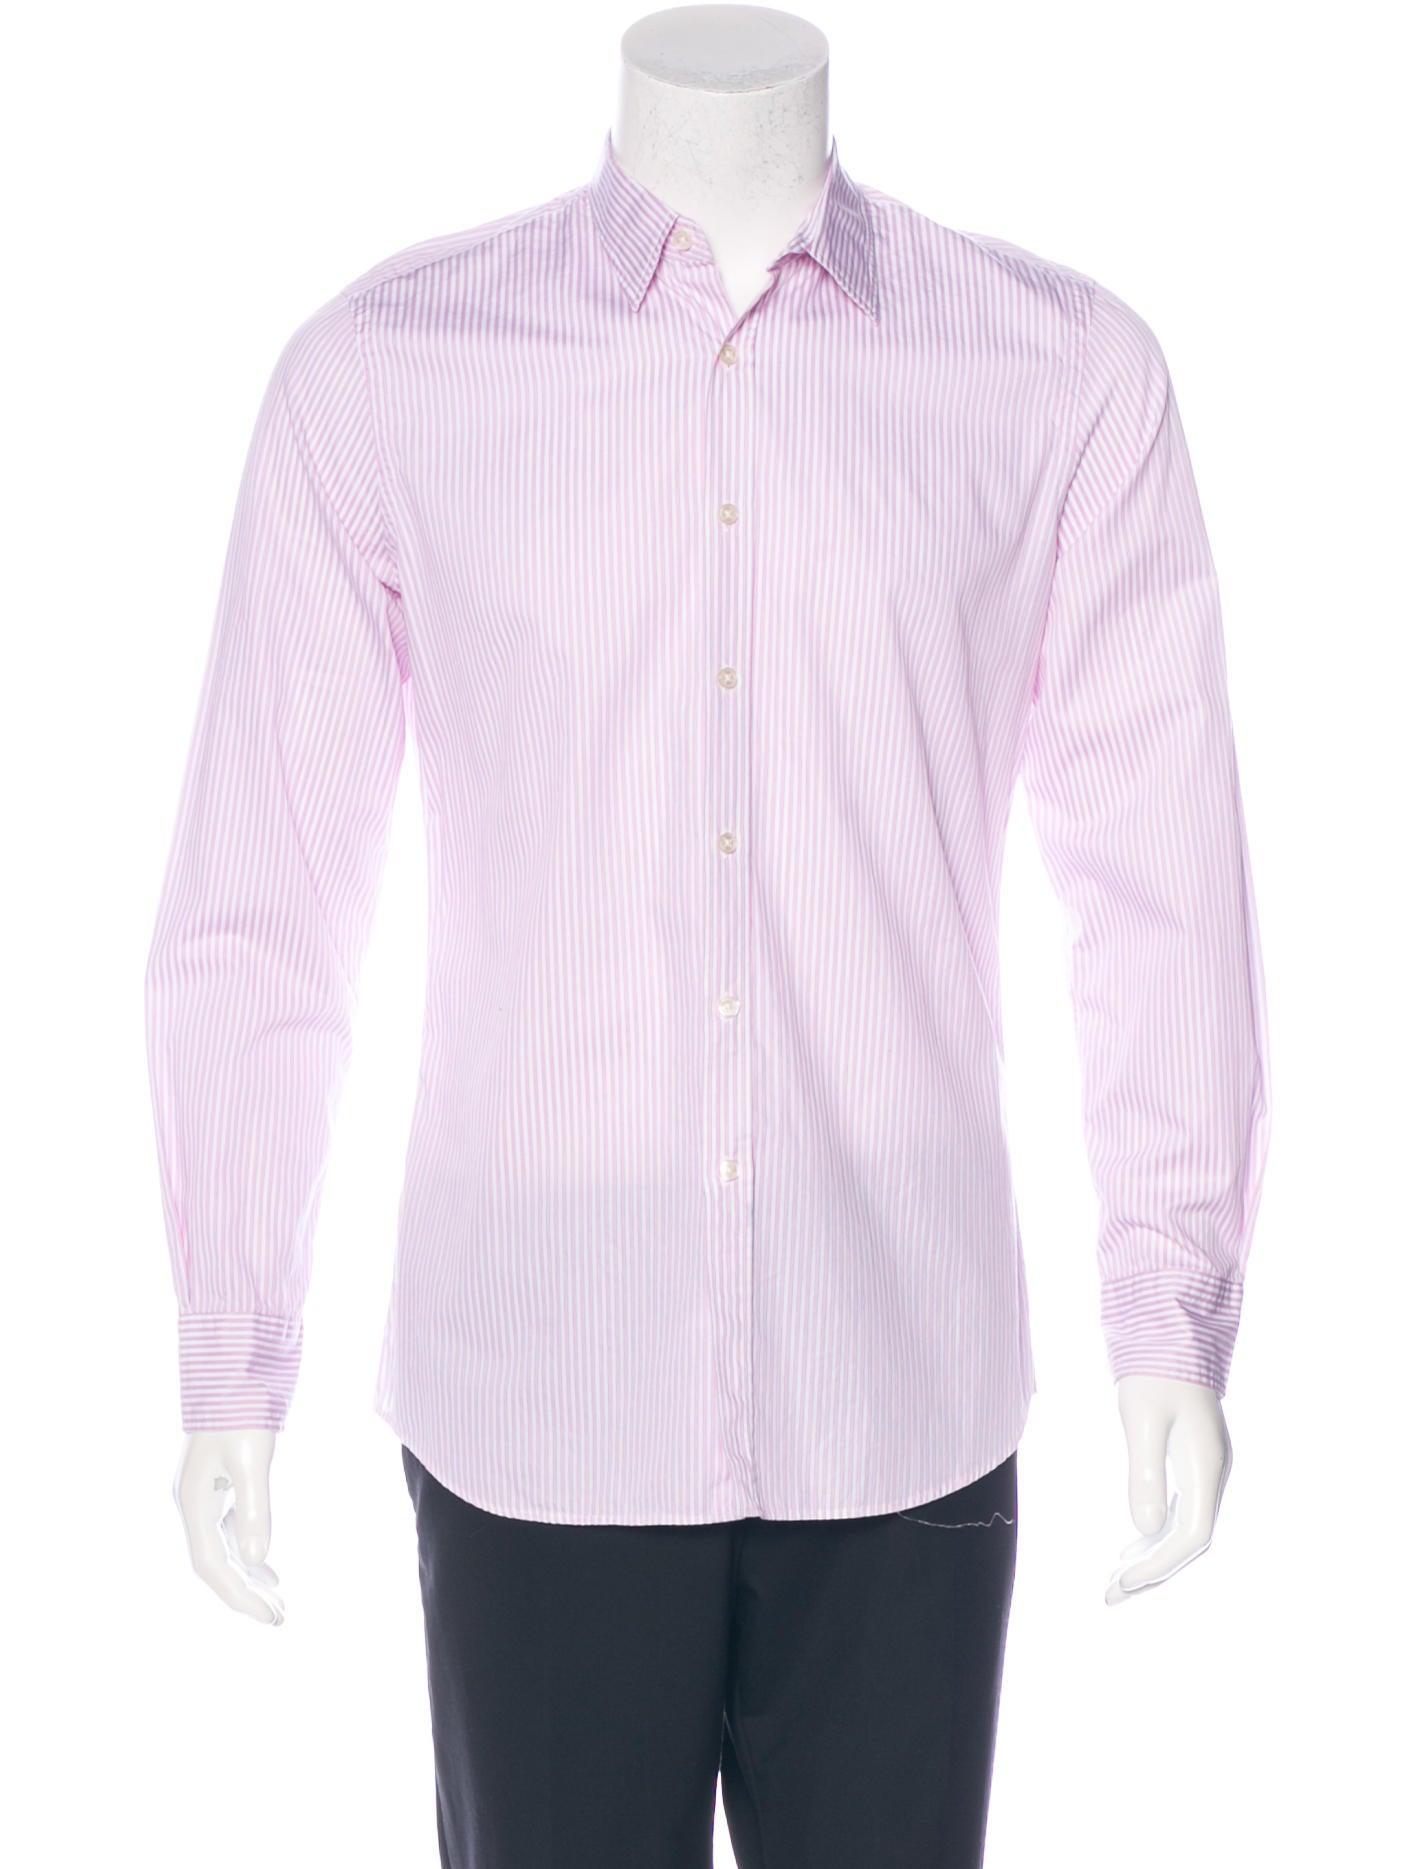 Paul smith tailored fit striped shirt clothing for Tailored fit shirts meaning